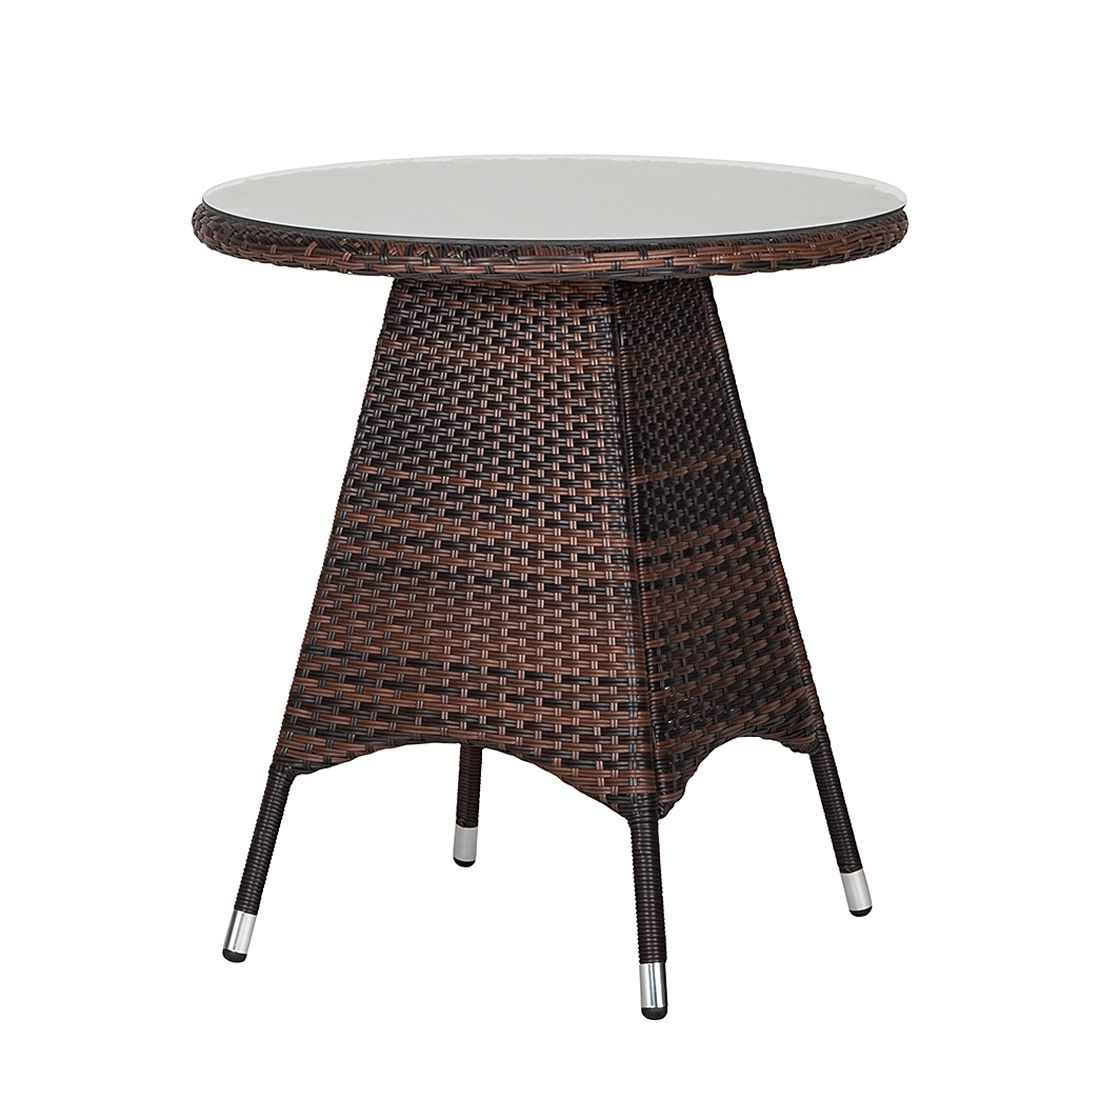 Table de jardin Paradise Lounge - Polyrotin marron, Fredriks